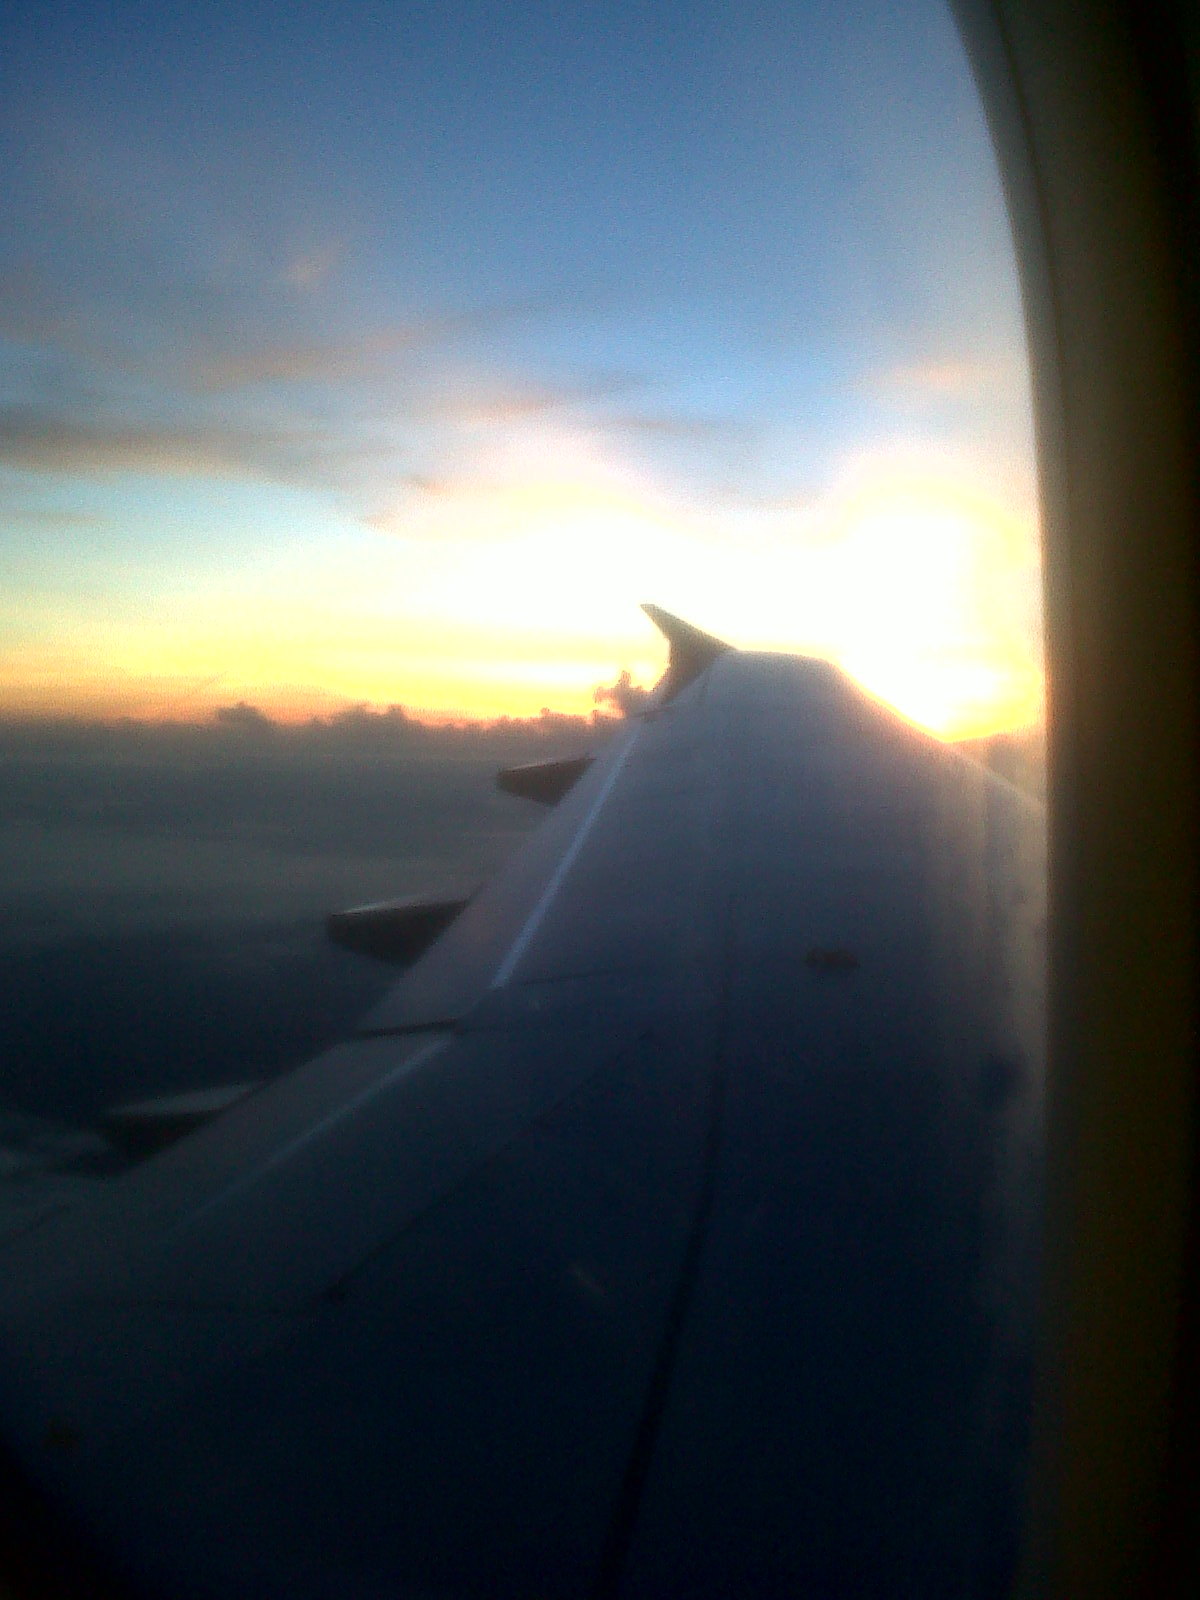 Sunrise viewed from the plane